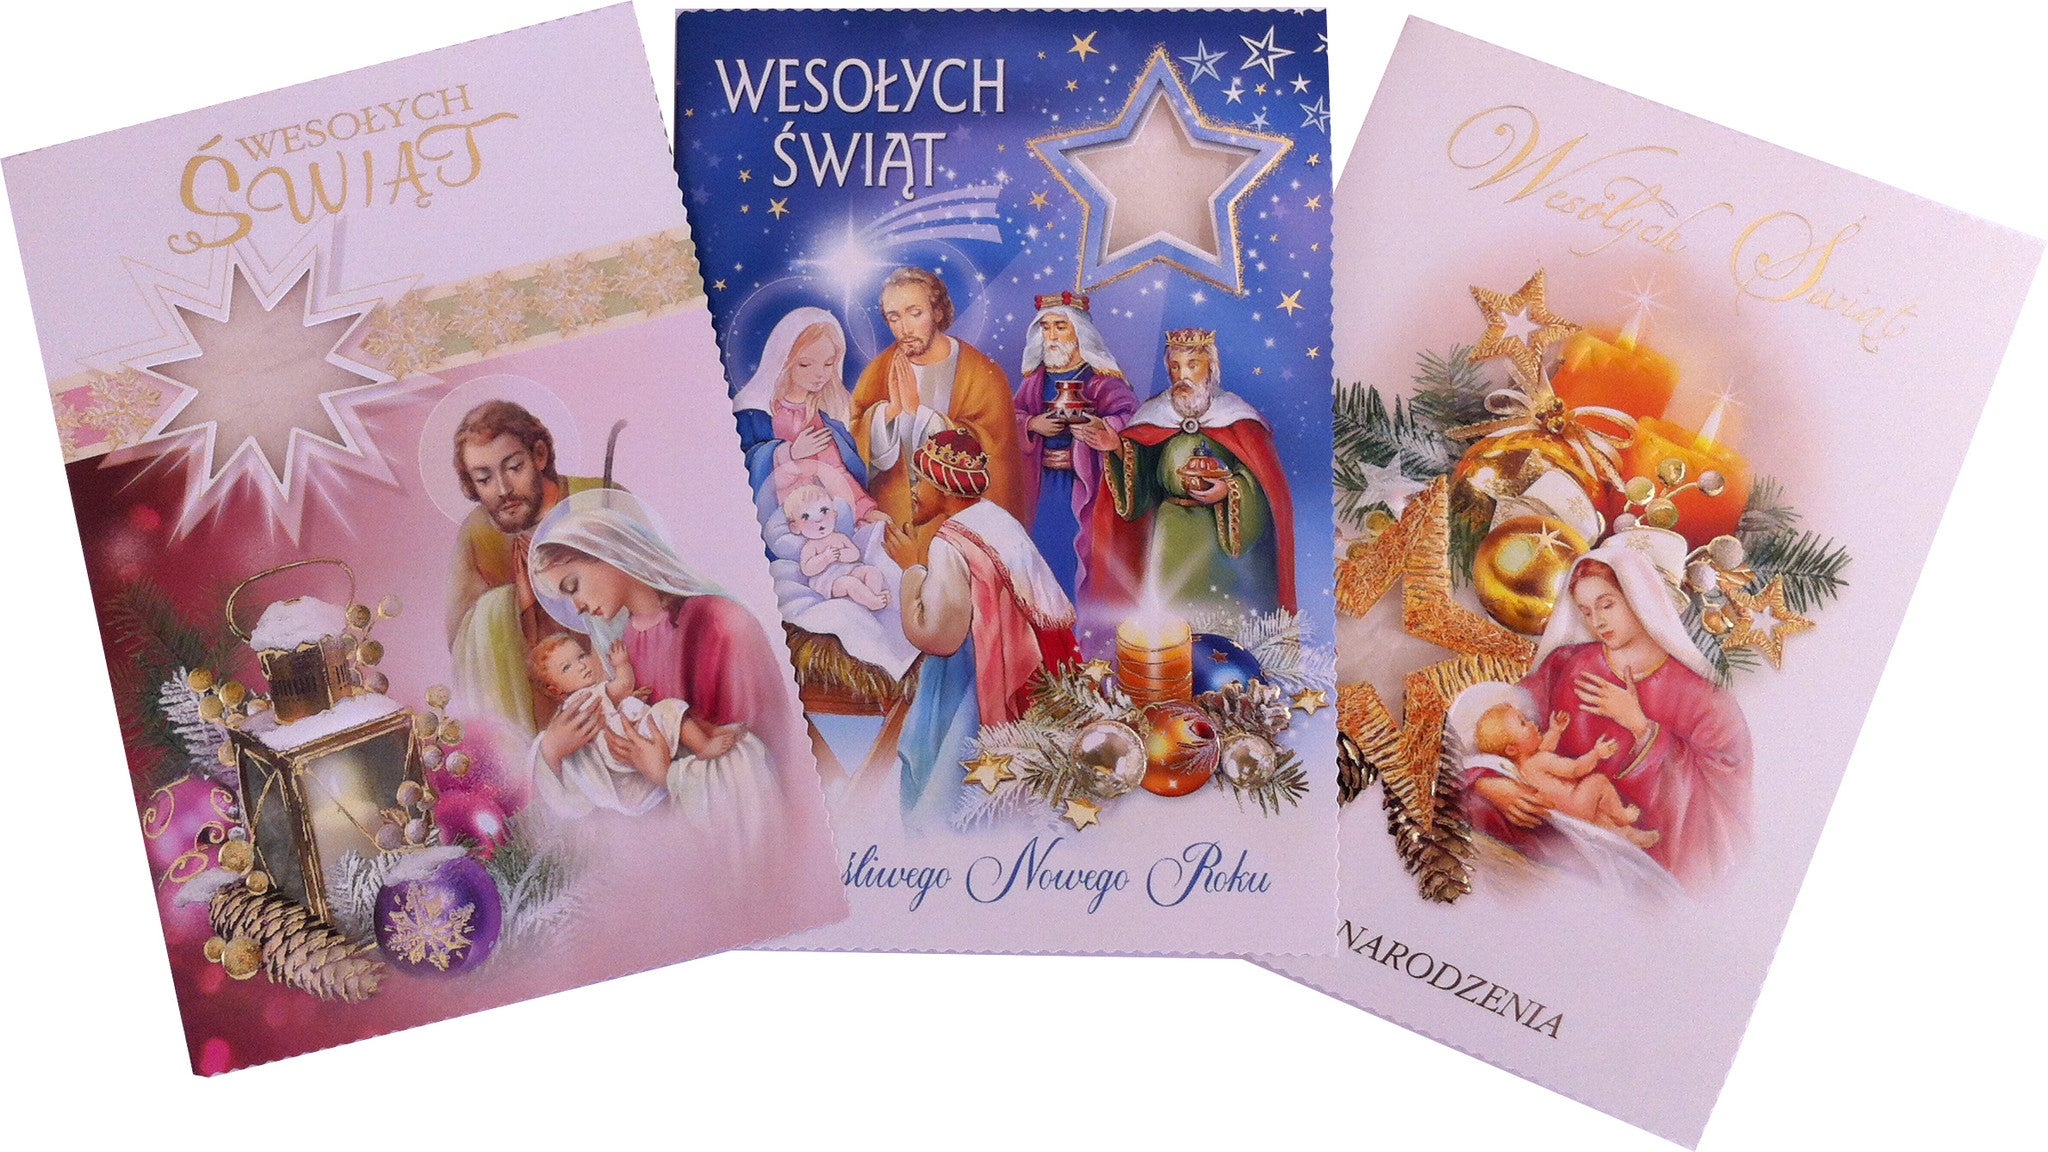 Beautiful Religious Christmas Cards.Religious Polish Christmas Greeting Cards With Wafers Oplatek Set Of 3